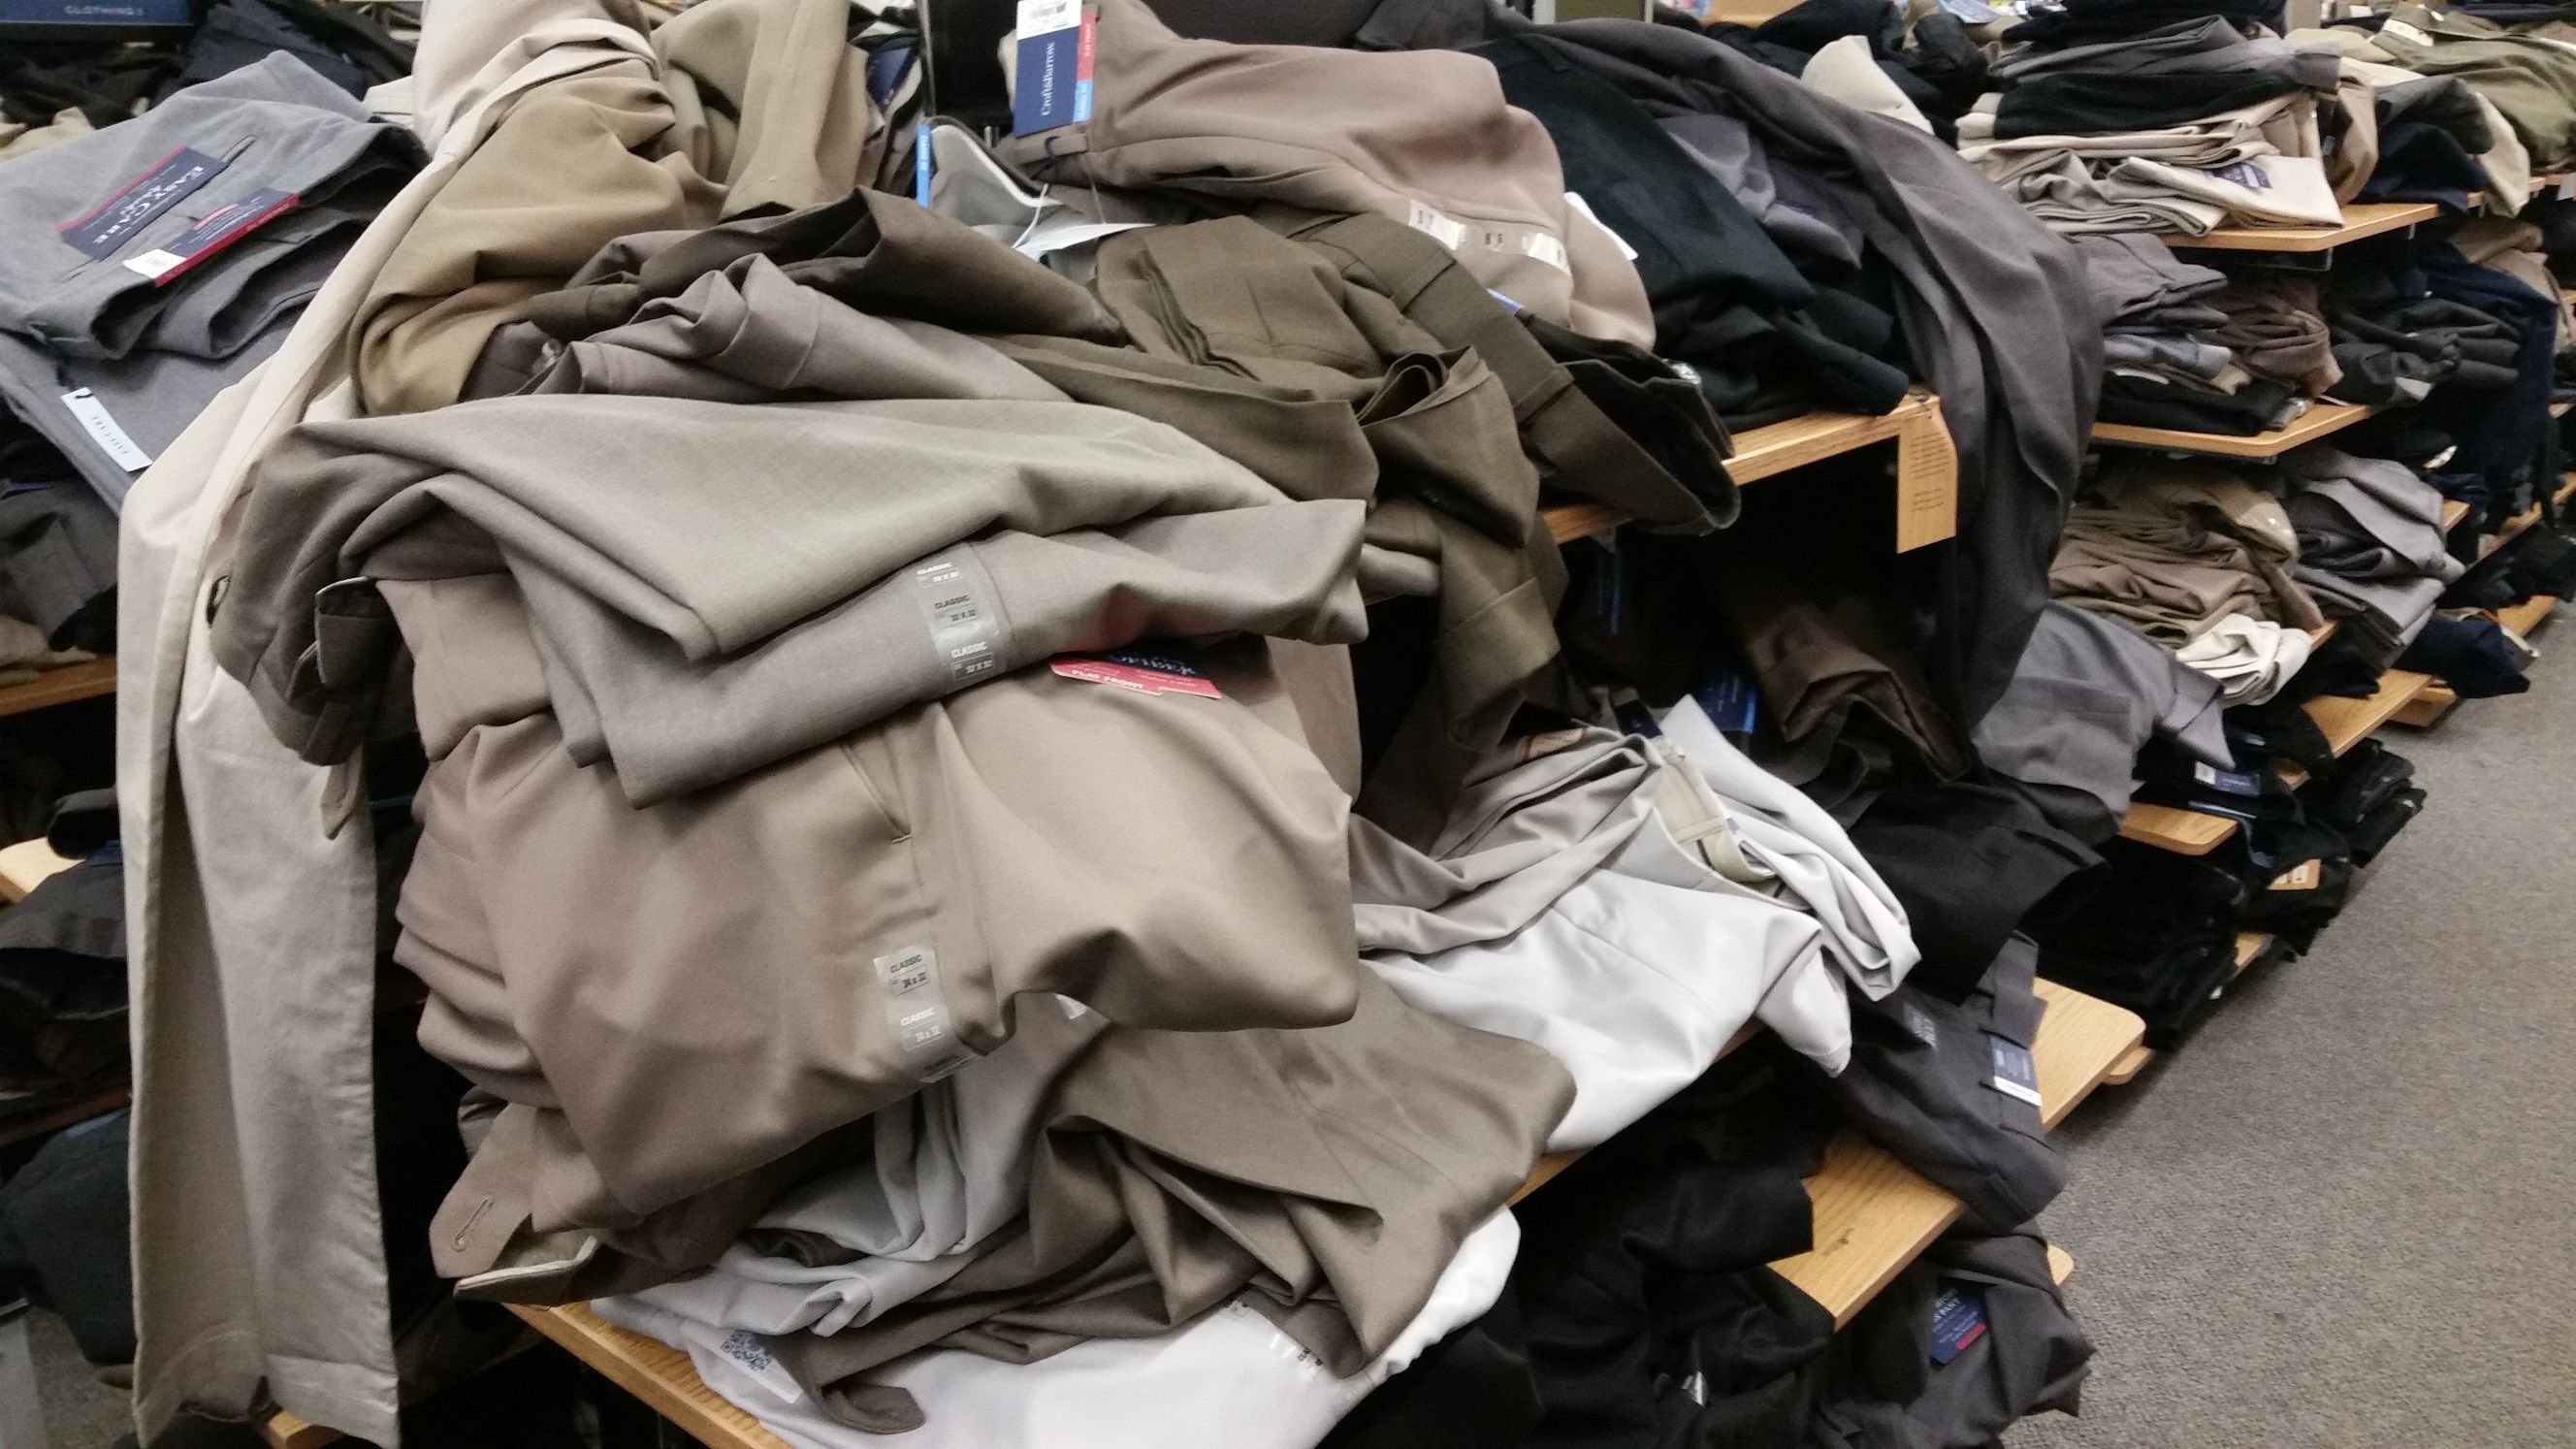 Have you ever seen a clothes department so messy? Photo